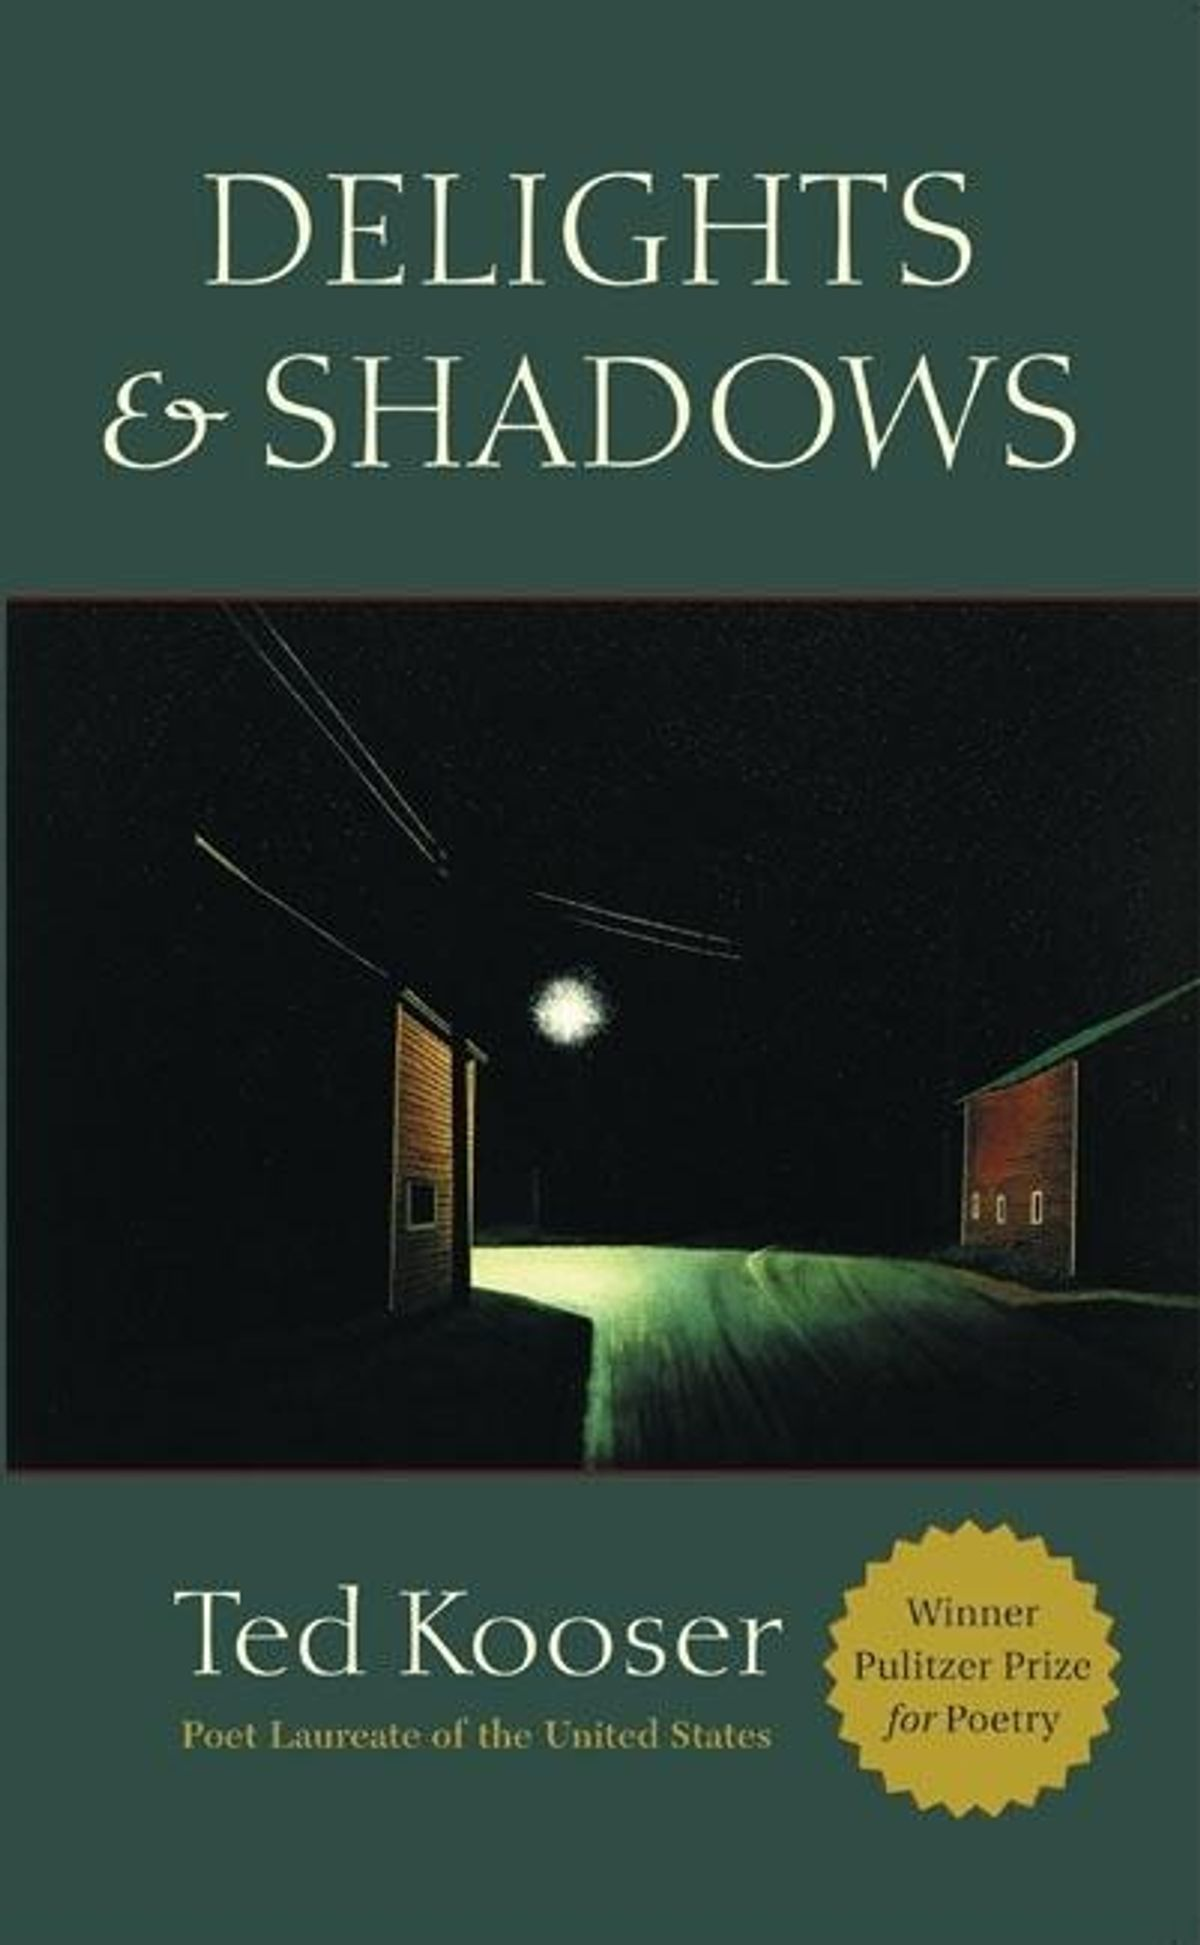 """13) Delights & Shadows - Every collection by Ted Kooser is amazing, but Delights & Shadows is probably the best example of his work. The United States Poet Laureate from 2004 to 2006, Kooser is a remarkable writer because he is able to distill so much grace from everyday life. Often described as conversational and approachable, Kooser's poetry is magnificent because it gently teaches us how to see the ordinary as beautiful. Check out the poem below, titled """"Pegboard,"""" where he artfully pulls cosmic awe from such a commonplace item.""""It has been carefully paintedwith the outlines of toolsto show us which belongs where,auger and drawknife,claw hammer and crosscut saw,like the outlines of hands on the wallsof ancient caves in France,painted with soot mixed with spitten thousand years agoin the faltering firelight of time,hands borrowed to work on the worldand never returned."""""""